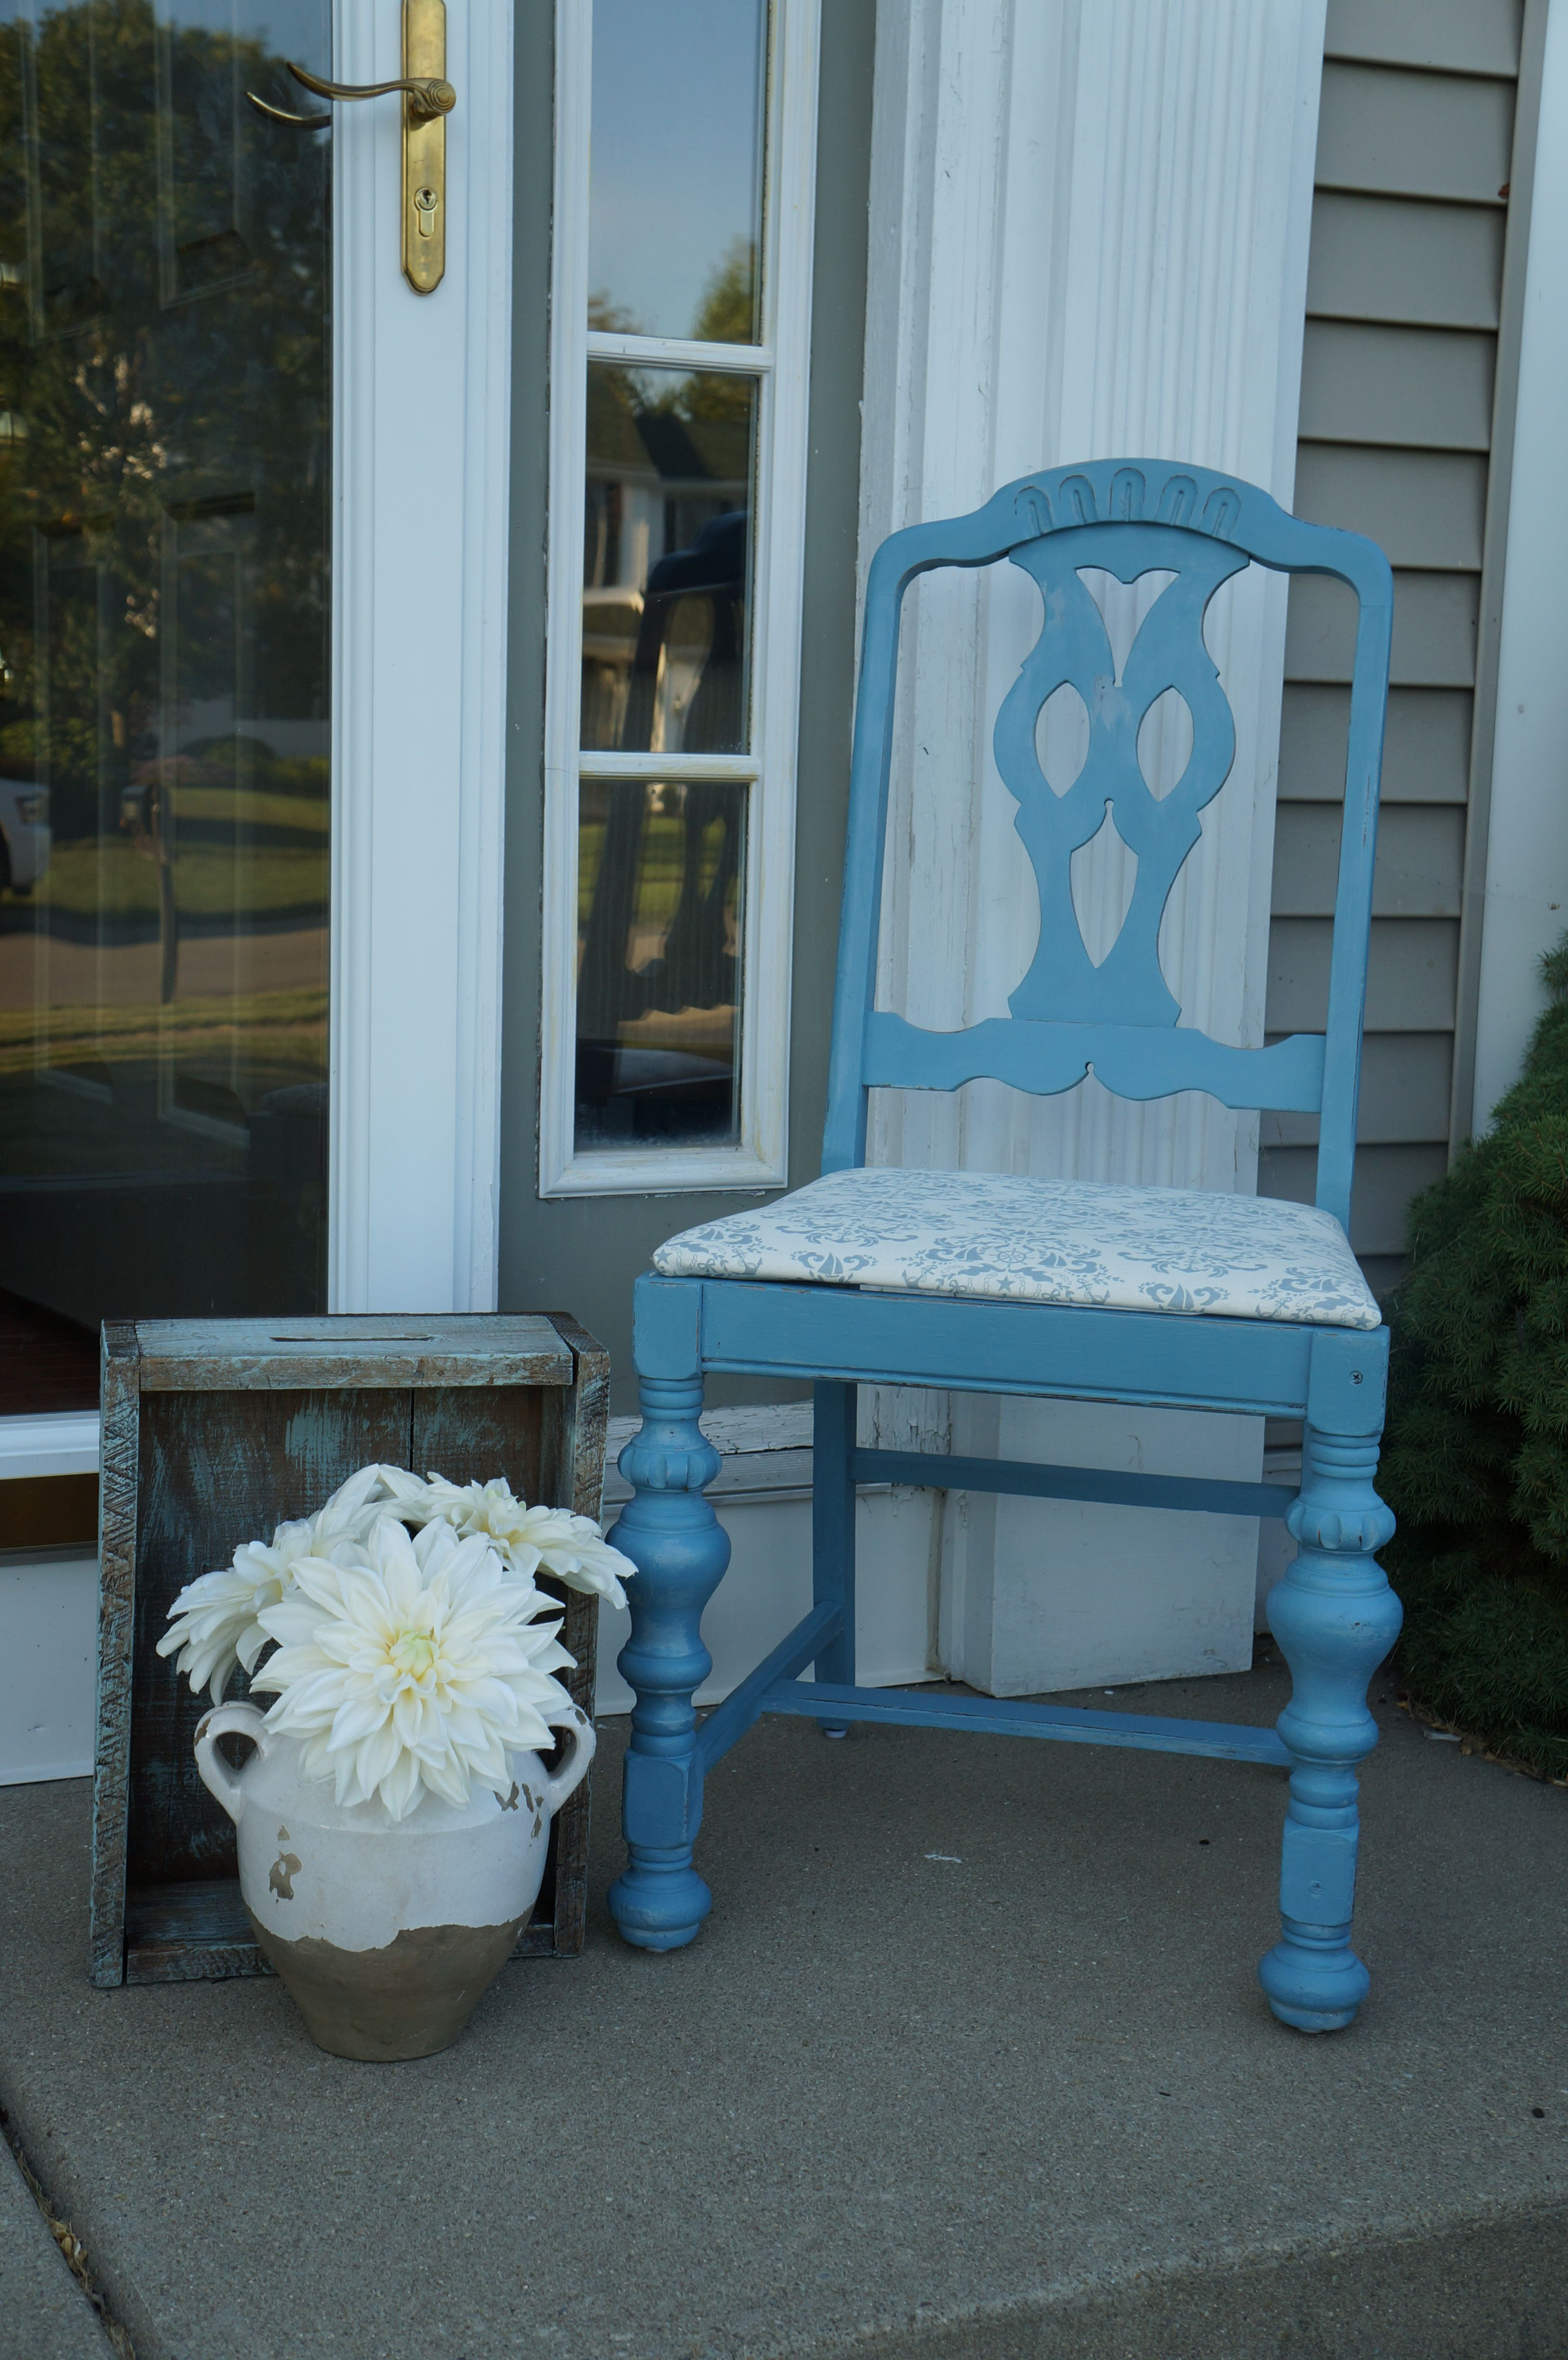 Refurbished Vintage Chair From The 1920u0027s. Beautiful Blue Shabby Chic  Finish With Cute Cloth Chair